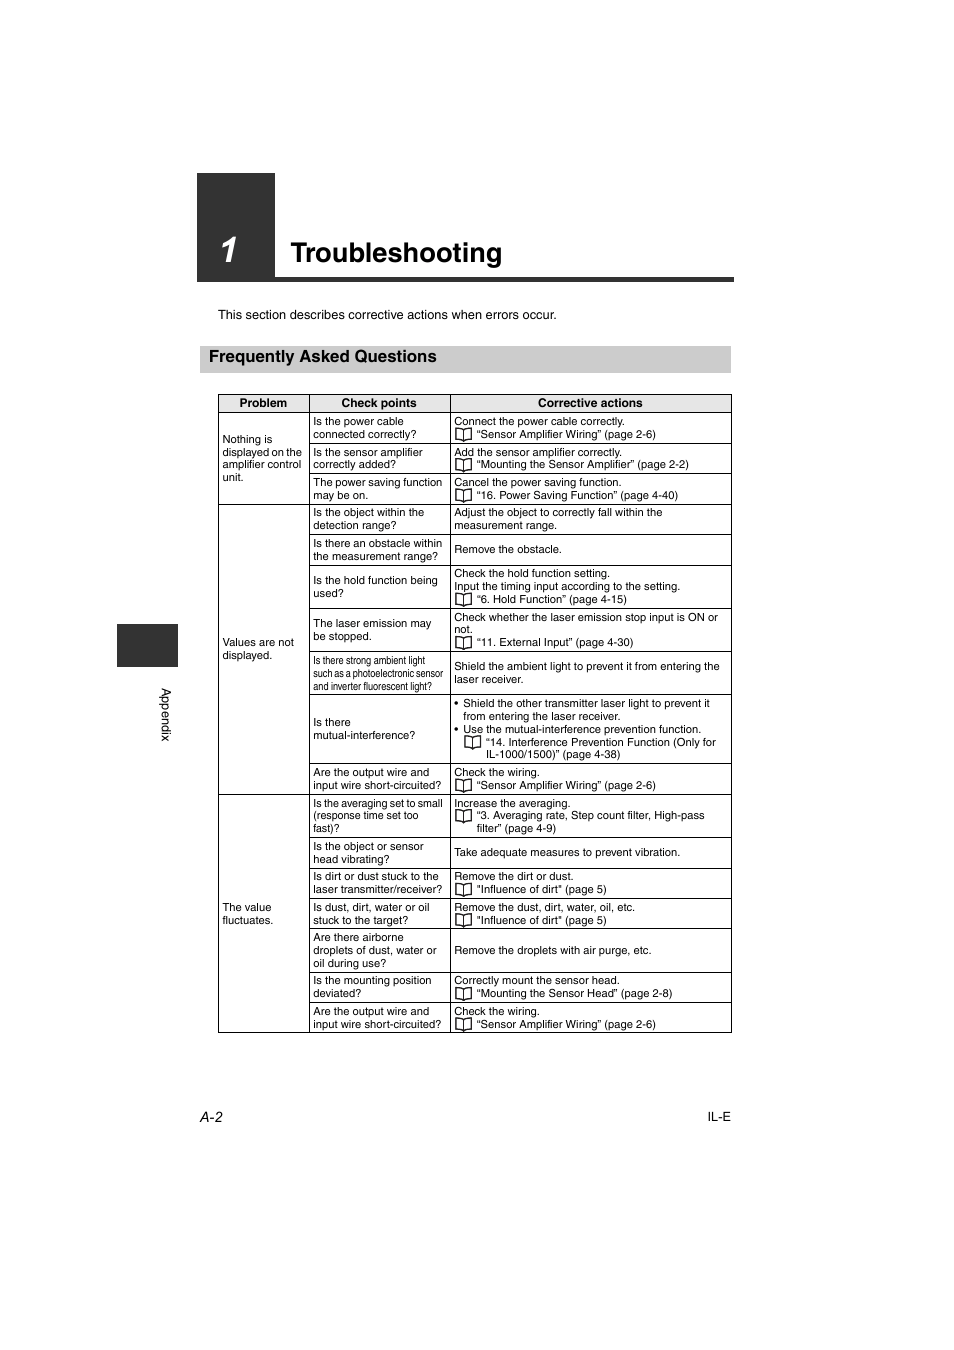 1 troubleshooting, Frequently asked questions